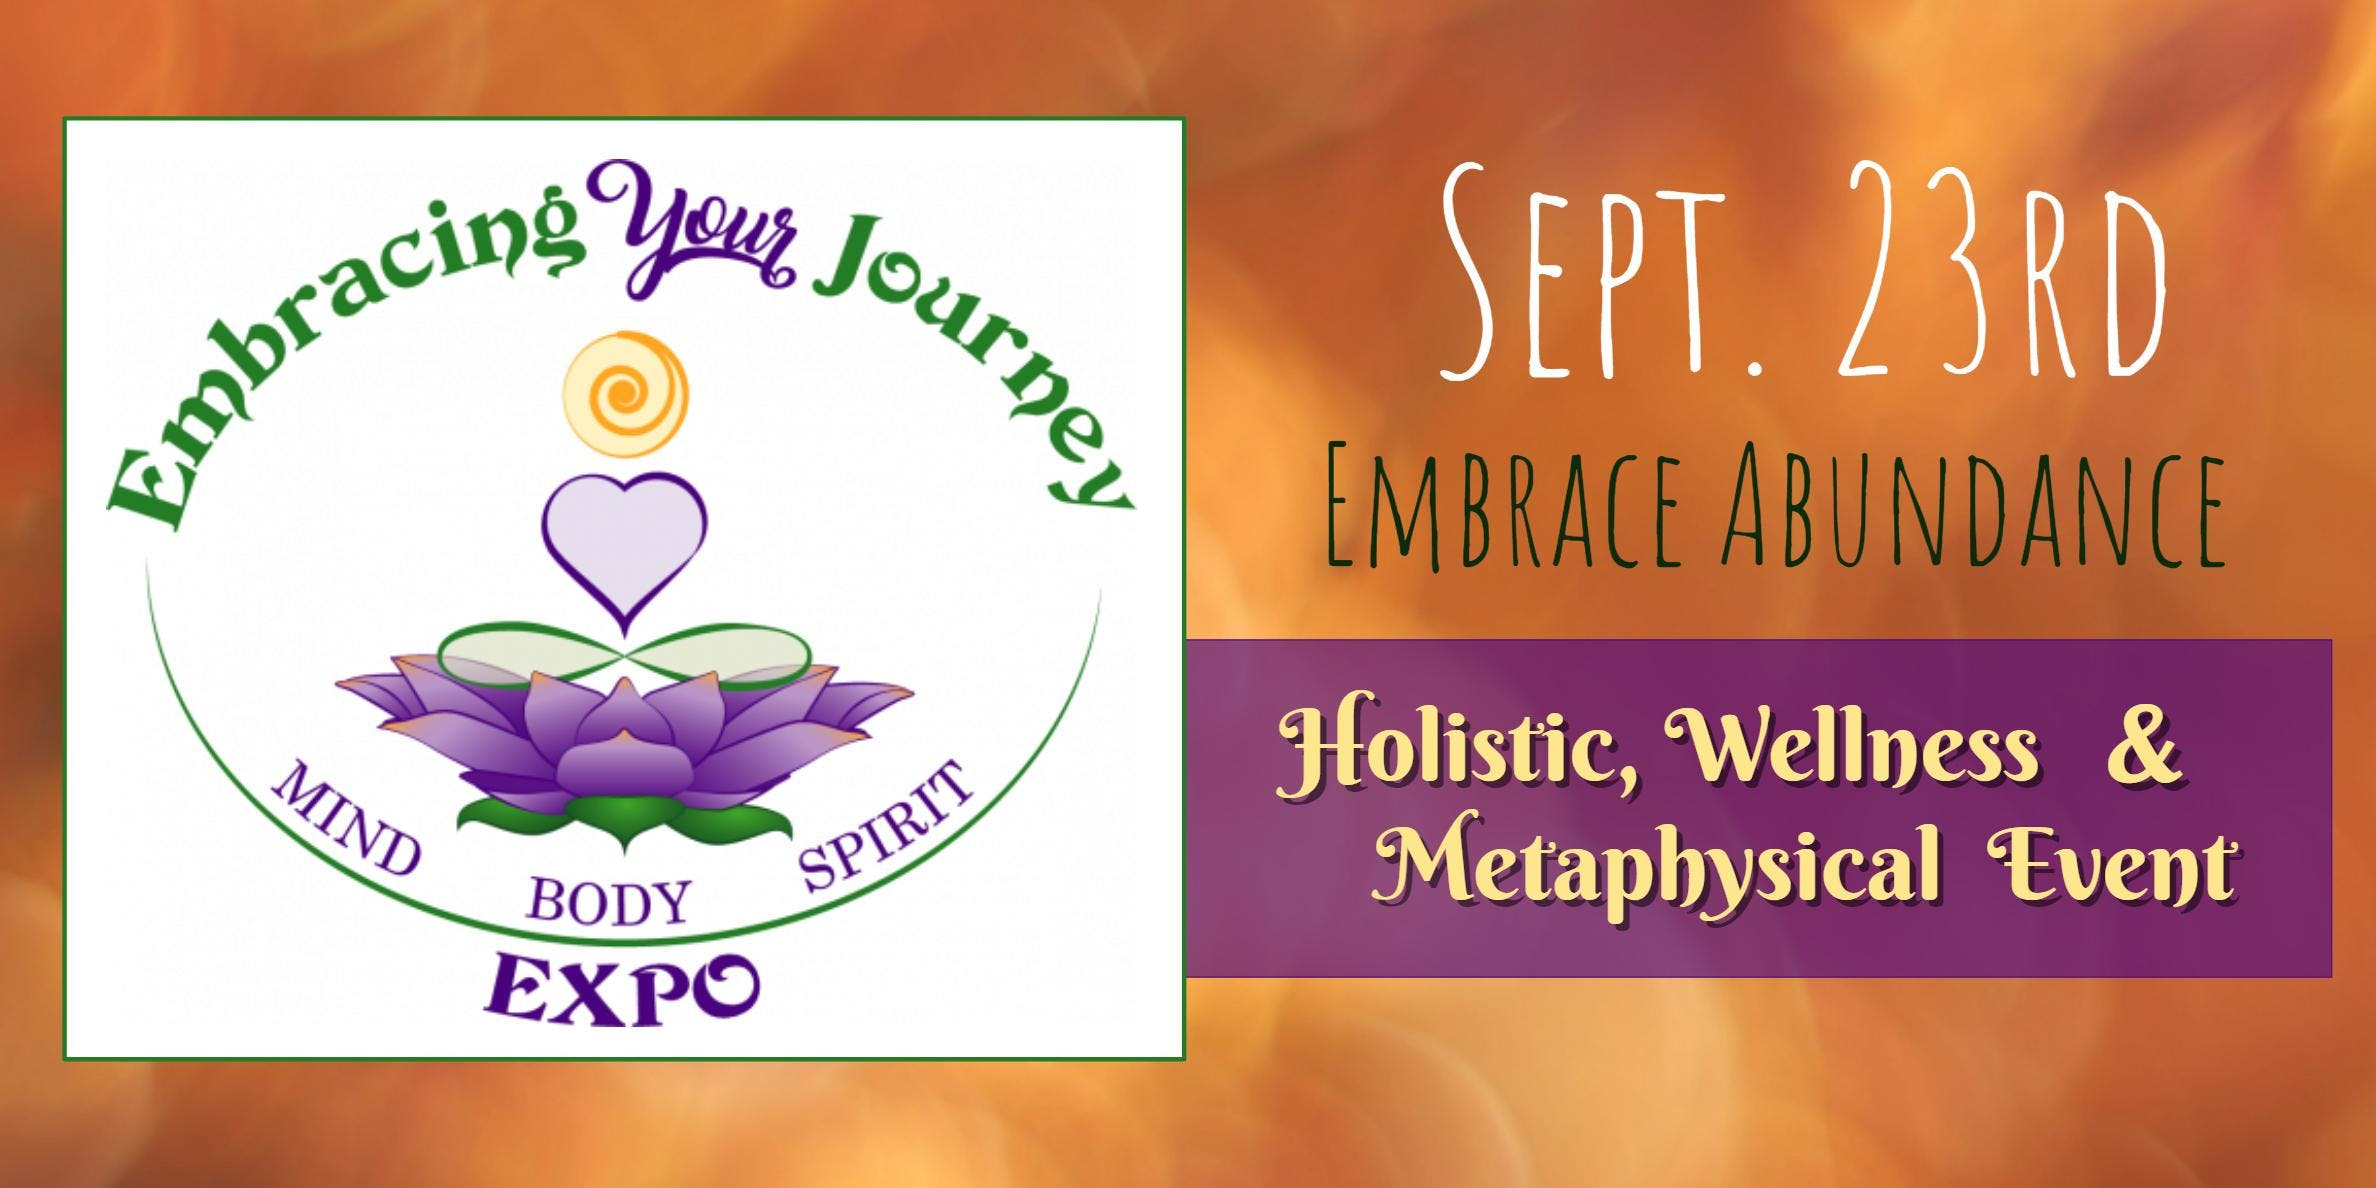 Embracing Your Journey Expo - September 23rd 2018